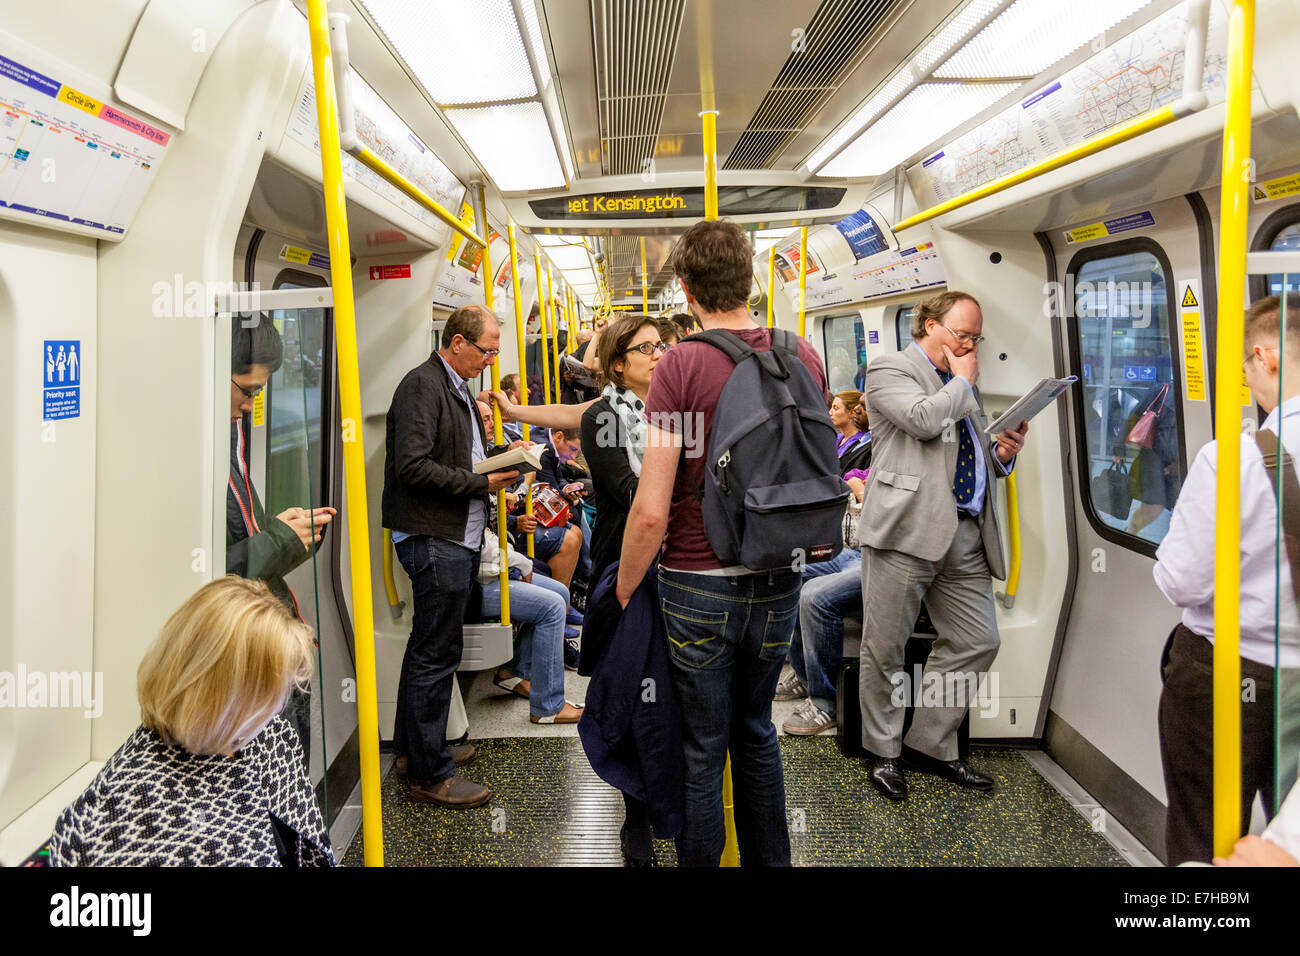 A London Underground Train, London, England - Stock Image